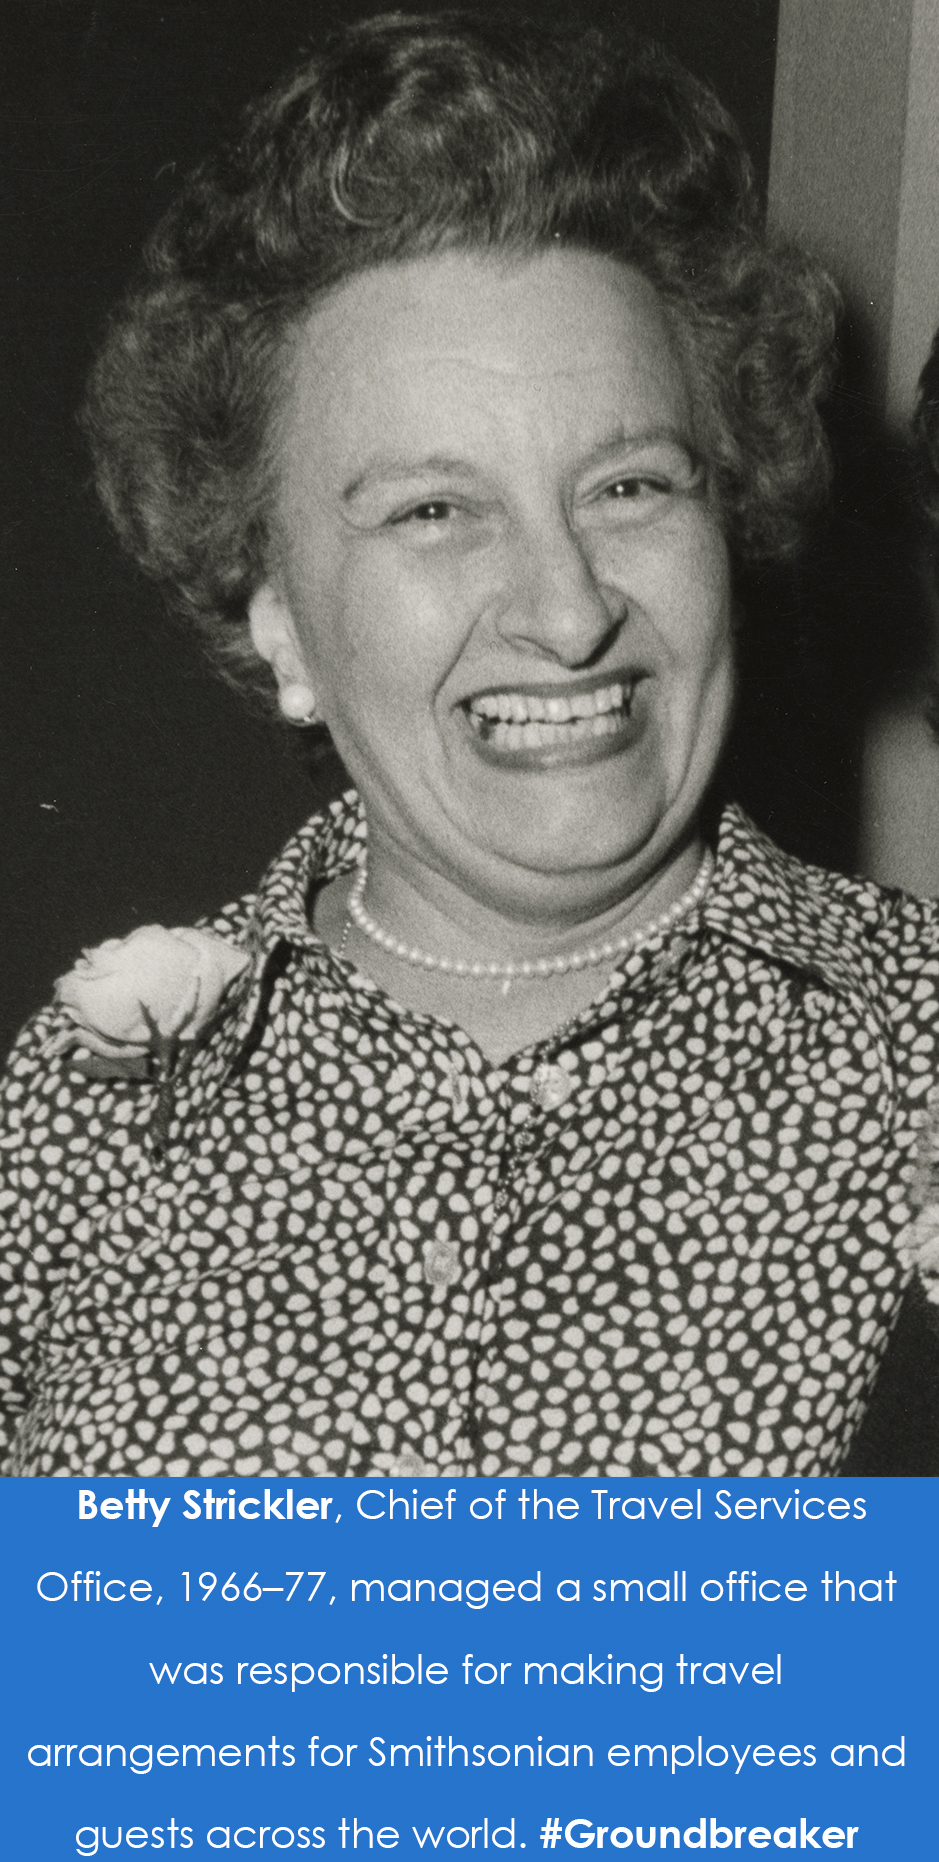 Photograph of a woman smiling broadly.